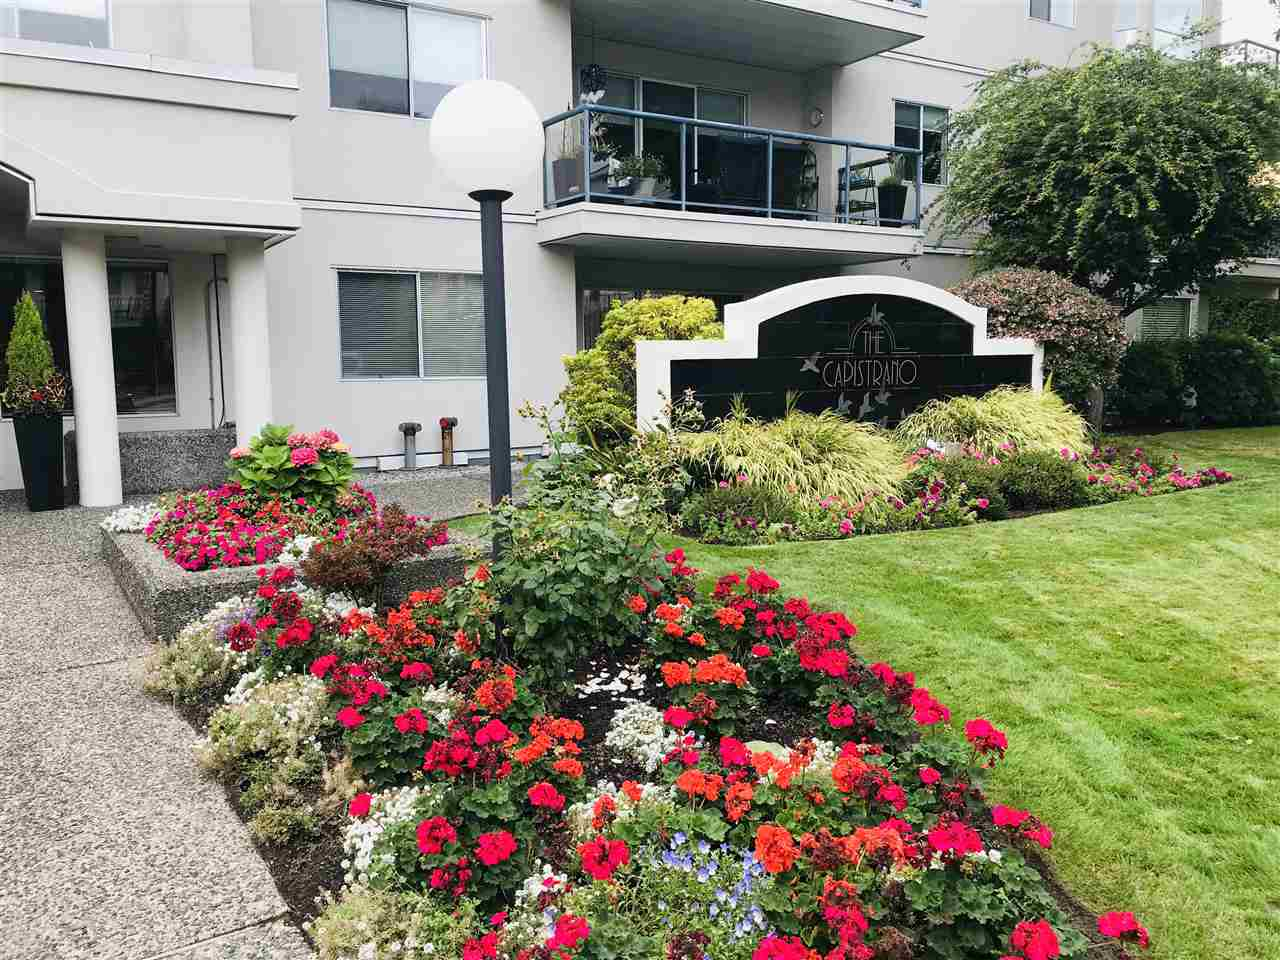 308 1441 BLACKWOOD STREET - White Rock Apartment/Condo for sale, 2 Bedrooms (R2502192)